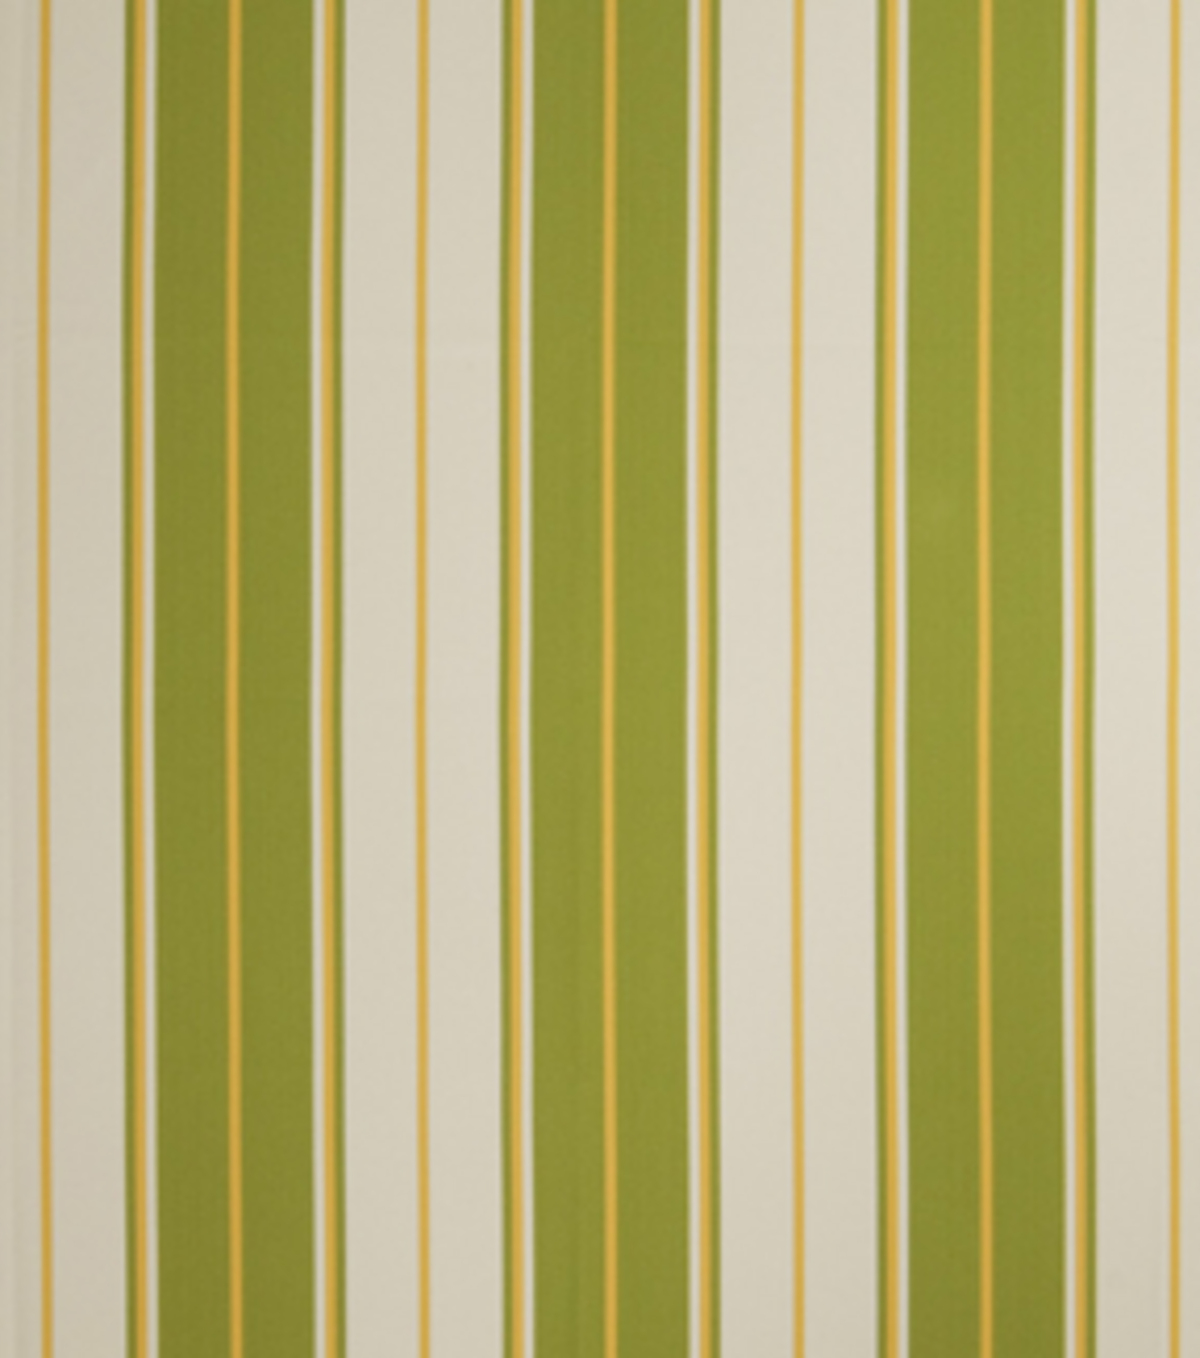 Home Decor 8\u0022x8\u0022 Fabric Swatch-Bella Dura Mildred Lime